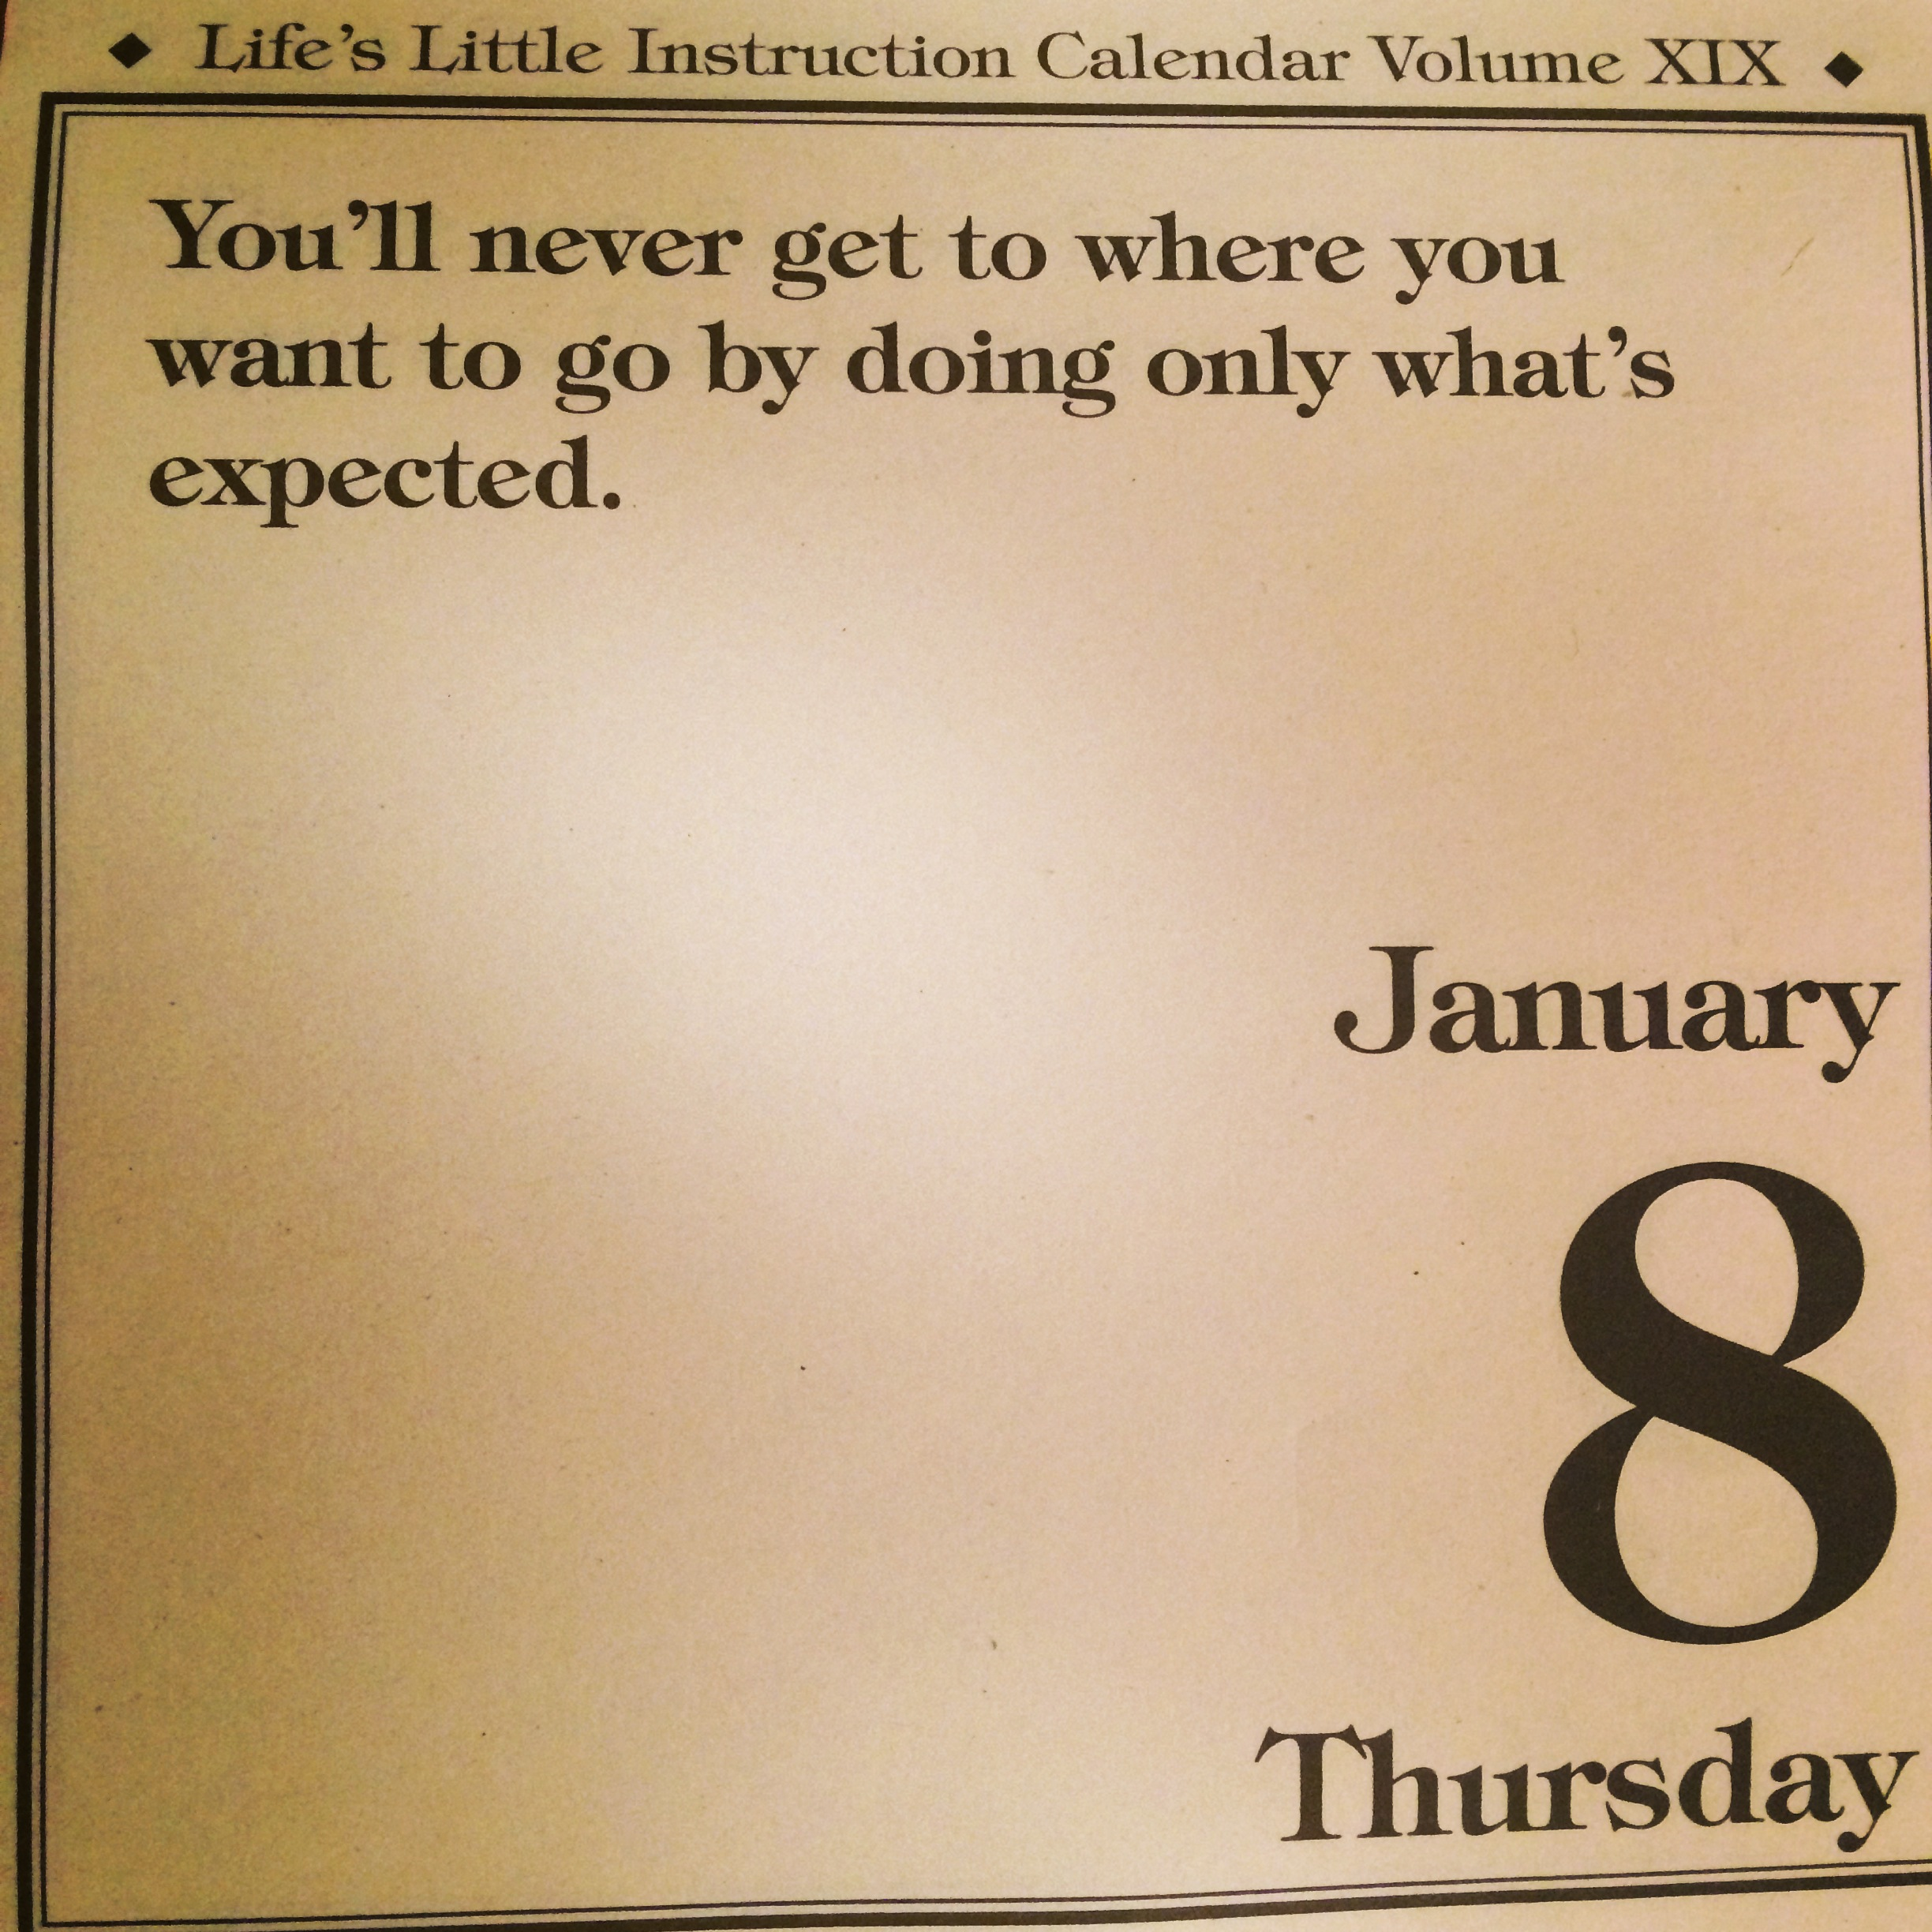 This is some good advice for me to remember in 2015.